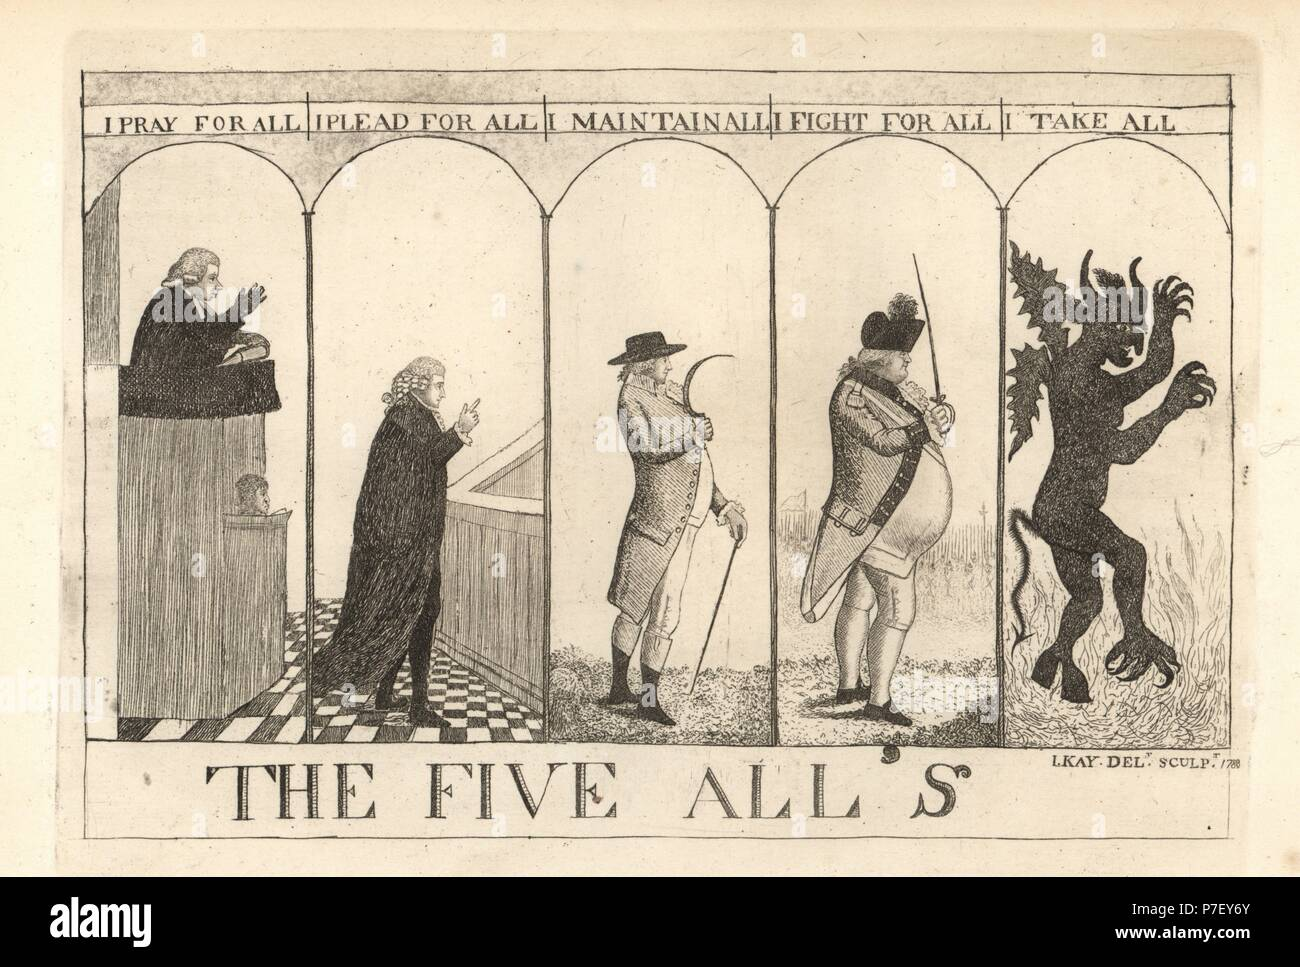 The Five Alls: preacher Reverend Andrew Hunter, lawyer Henry Erskine, farmer James Rocheid, soldier Quarter-Master Taylor and his Satanic Majesty the Devil. Copperplate engraving by John Kay from A Series of Original Portraits and Caricature Etchings, Hugh Paton, Edinburgh, 1842. - Stock Image